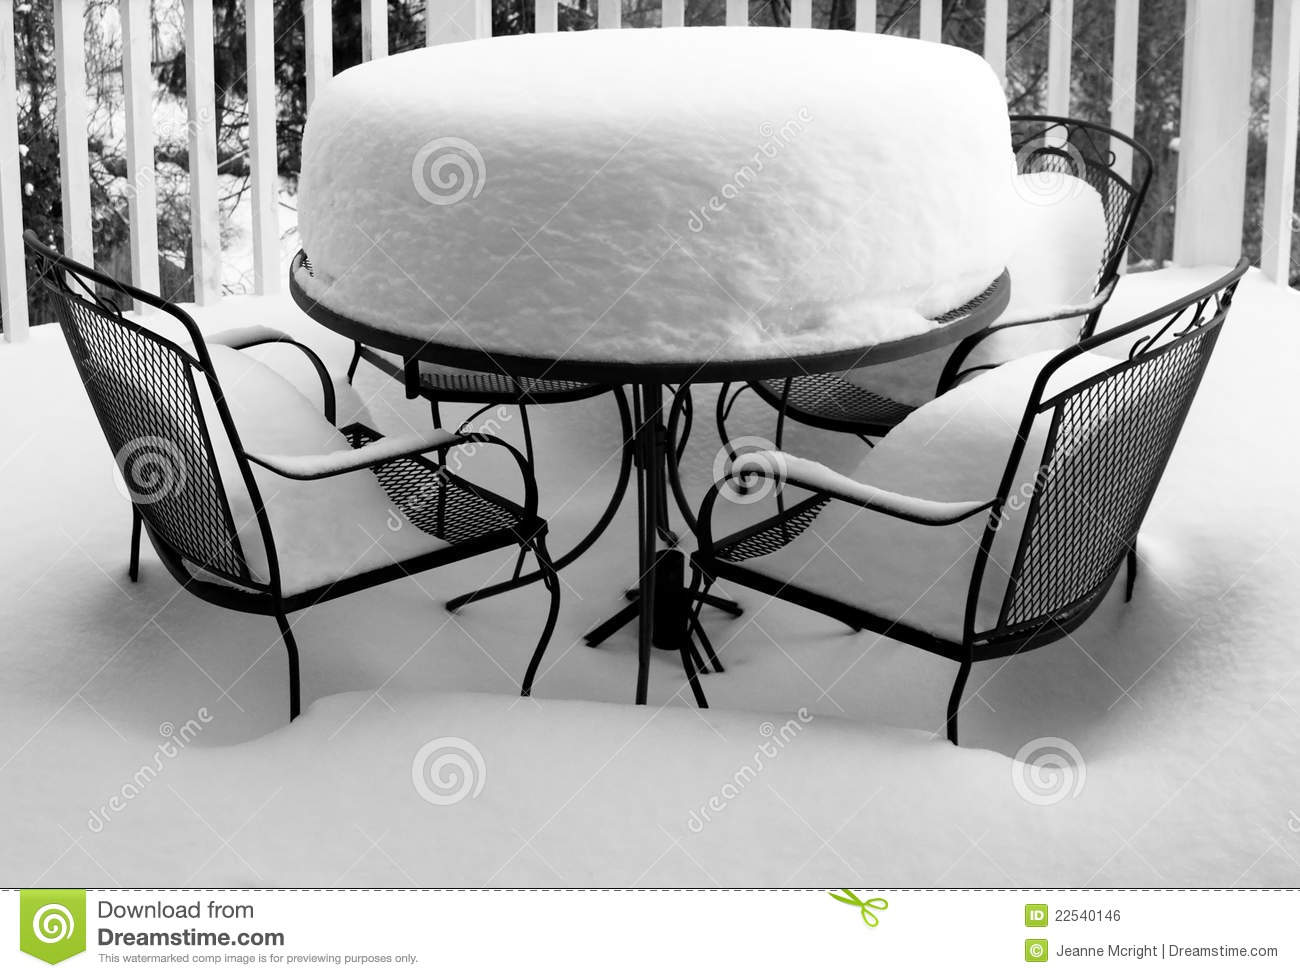 Deep Snow Covers Garden Table And Chairs Stock Photo